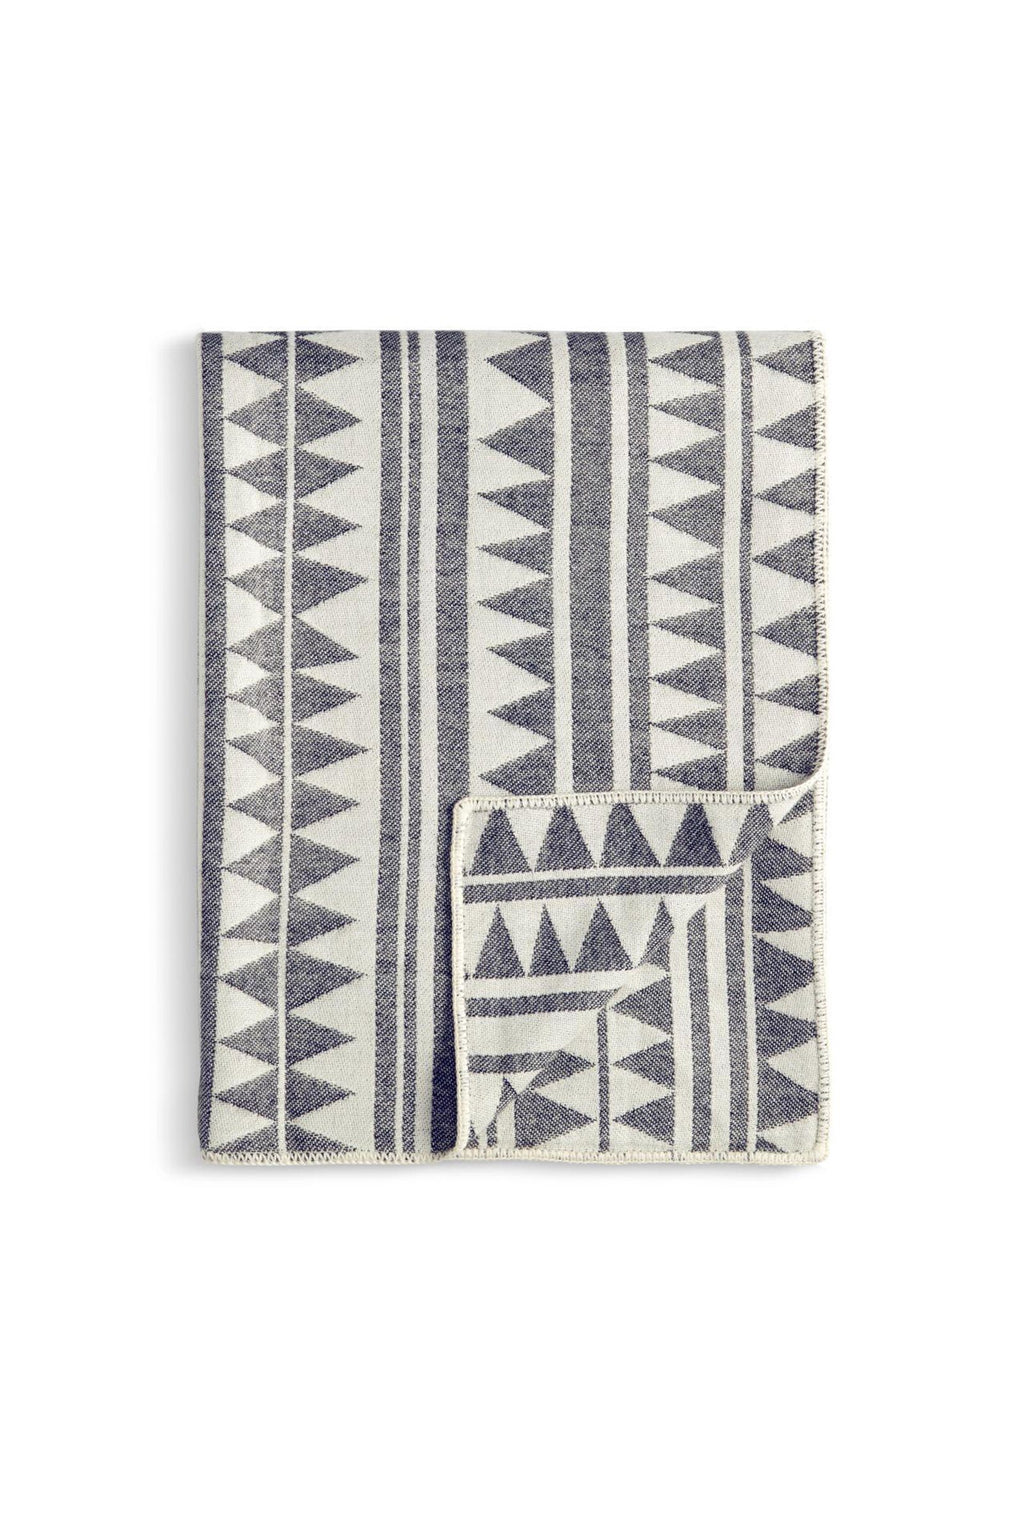 L'OBJET | Triangles Jacquard Throw L'Objet Marie France Van Damme Ercu + Grey